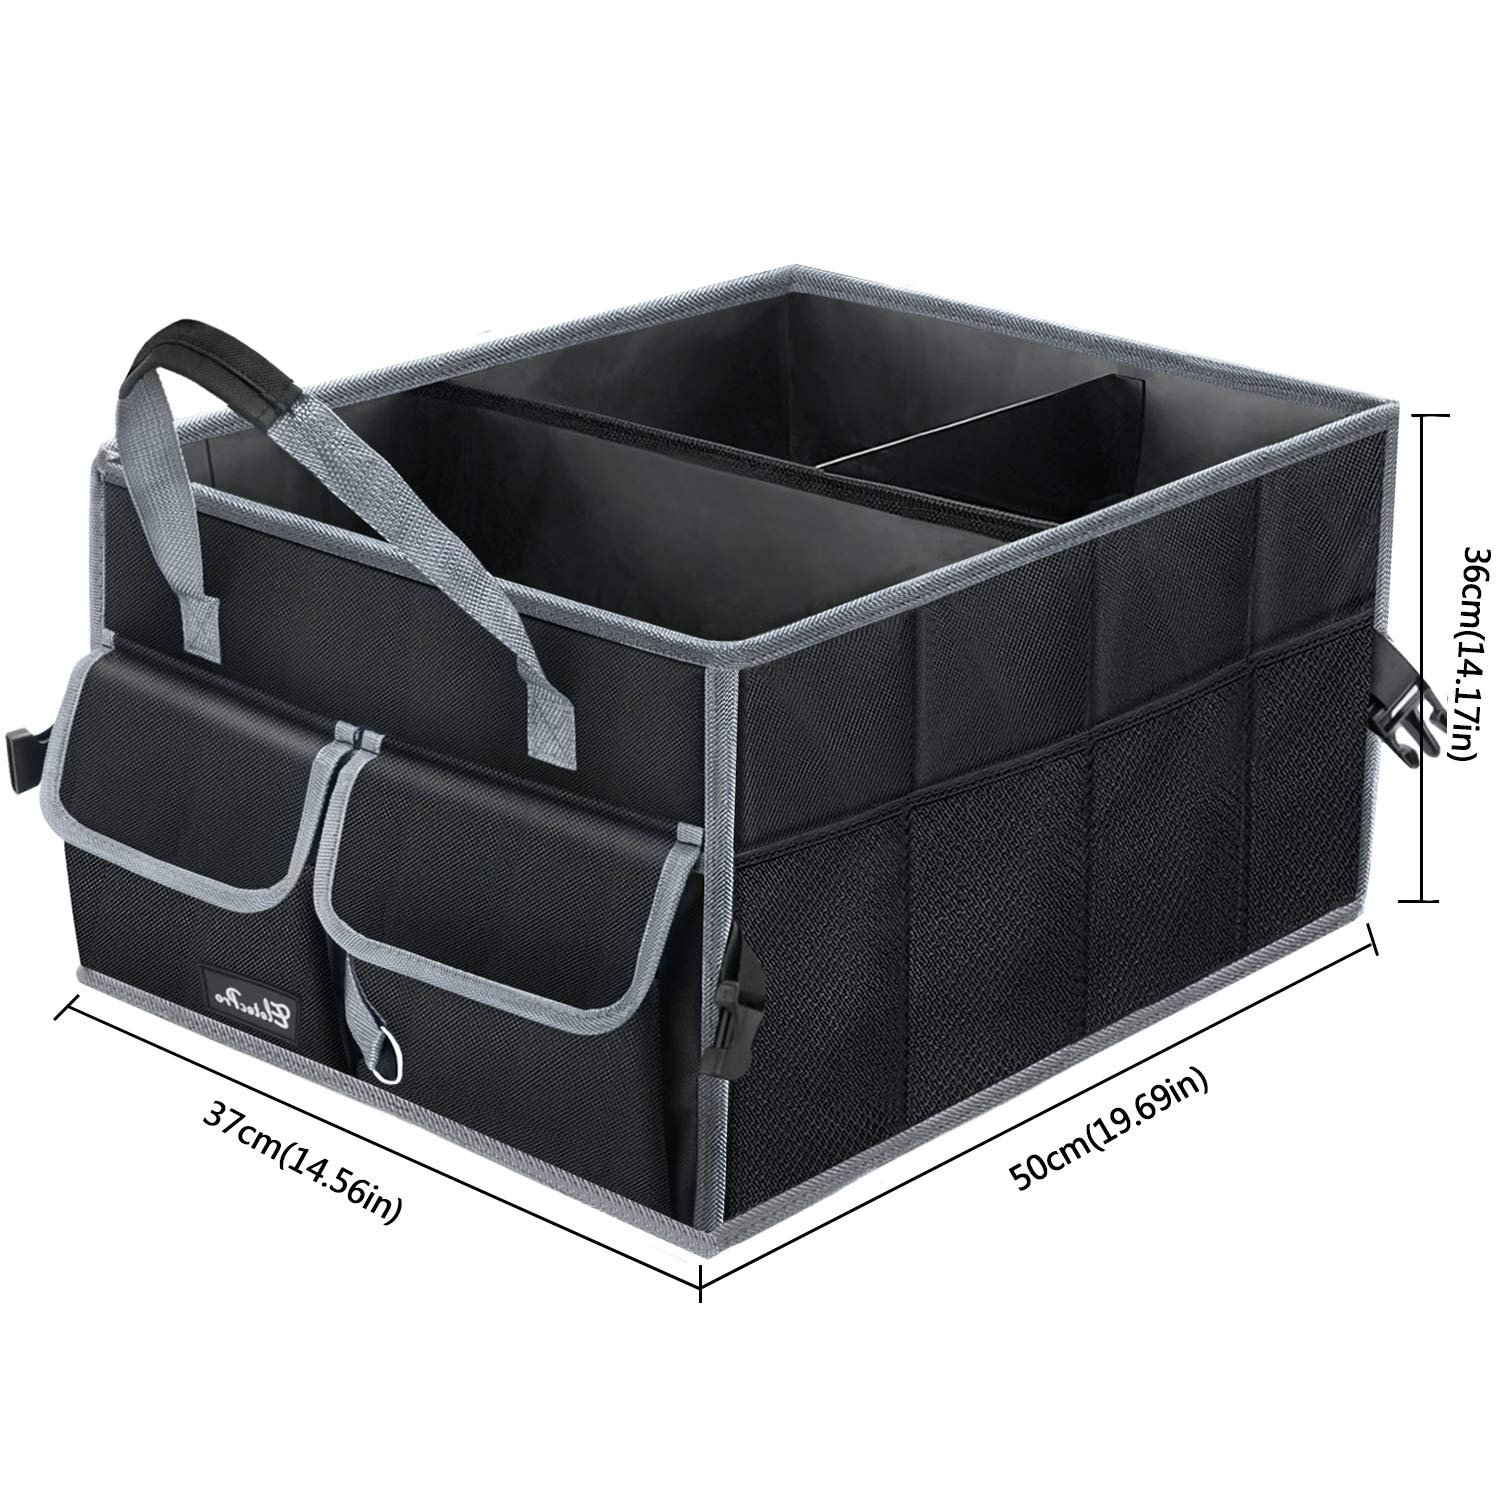 Minivan Truck /& Indoor Uses Car Boot Organizer,EletecPro Car Boot Bag Waterproof Foldable 2 in 1 Collapsible Storage Box With Straps For Car SUV